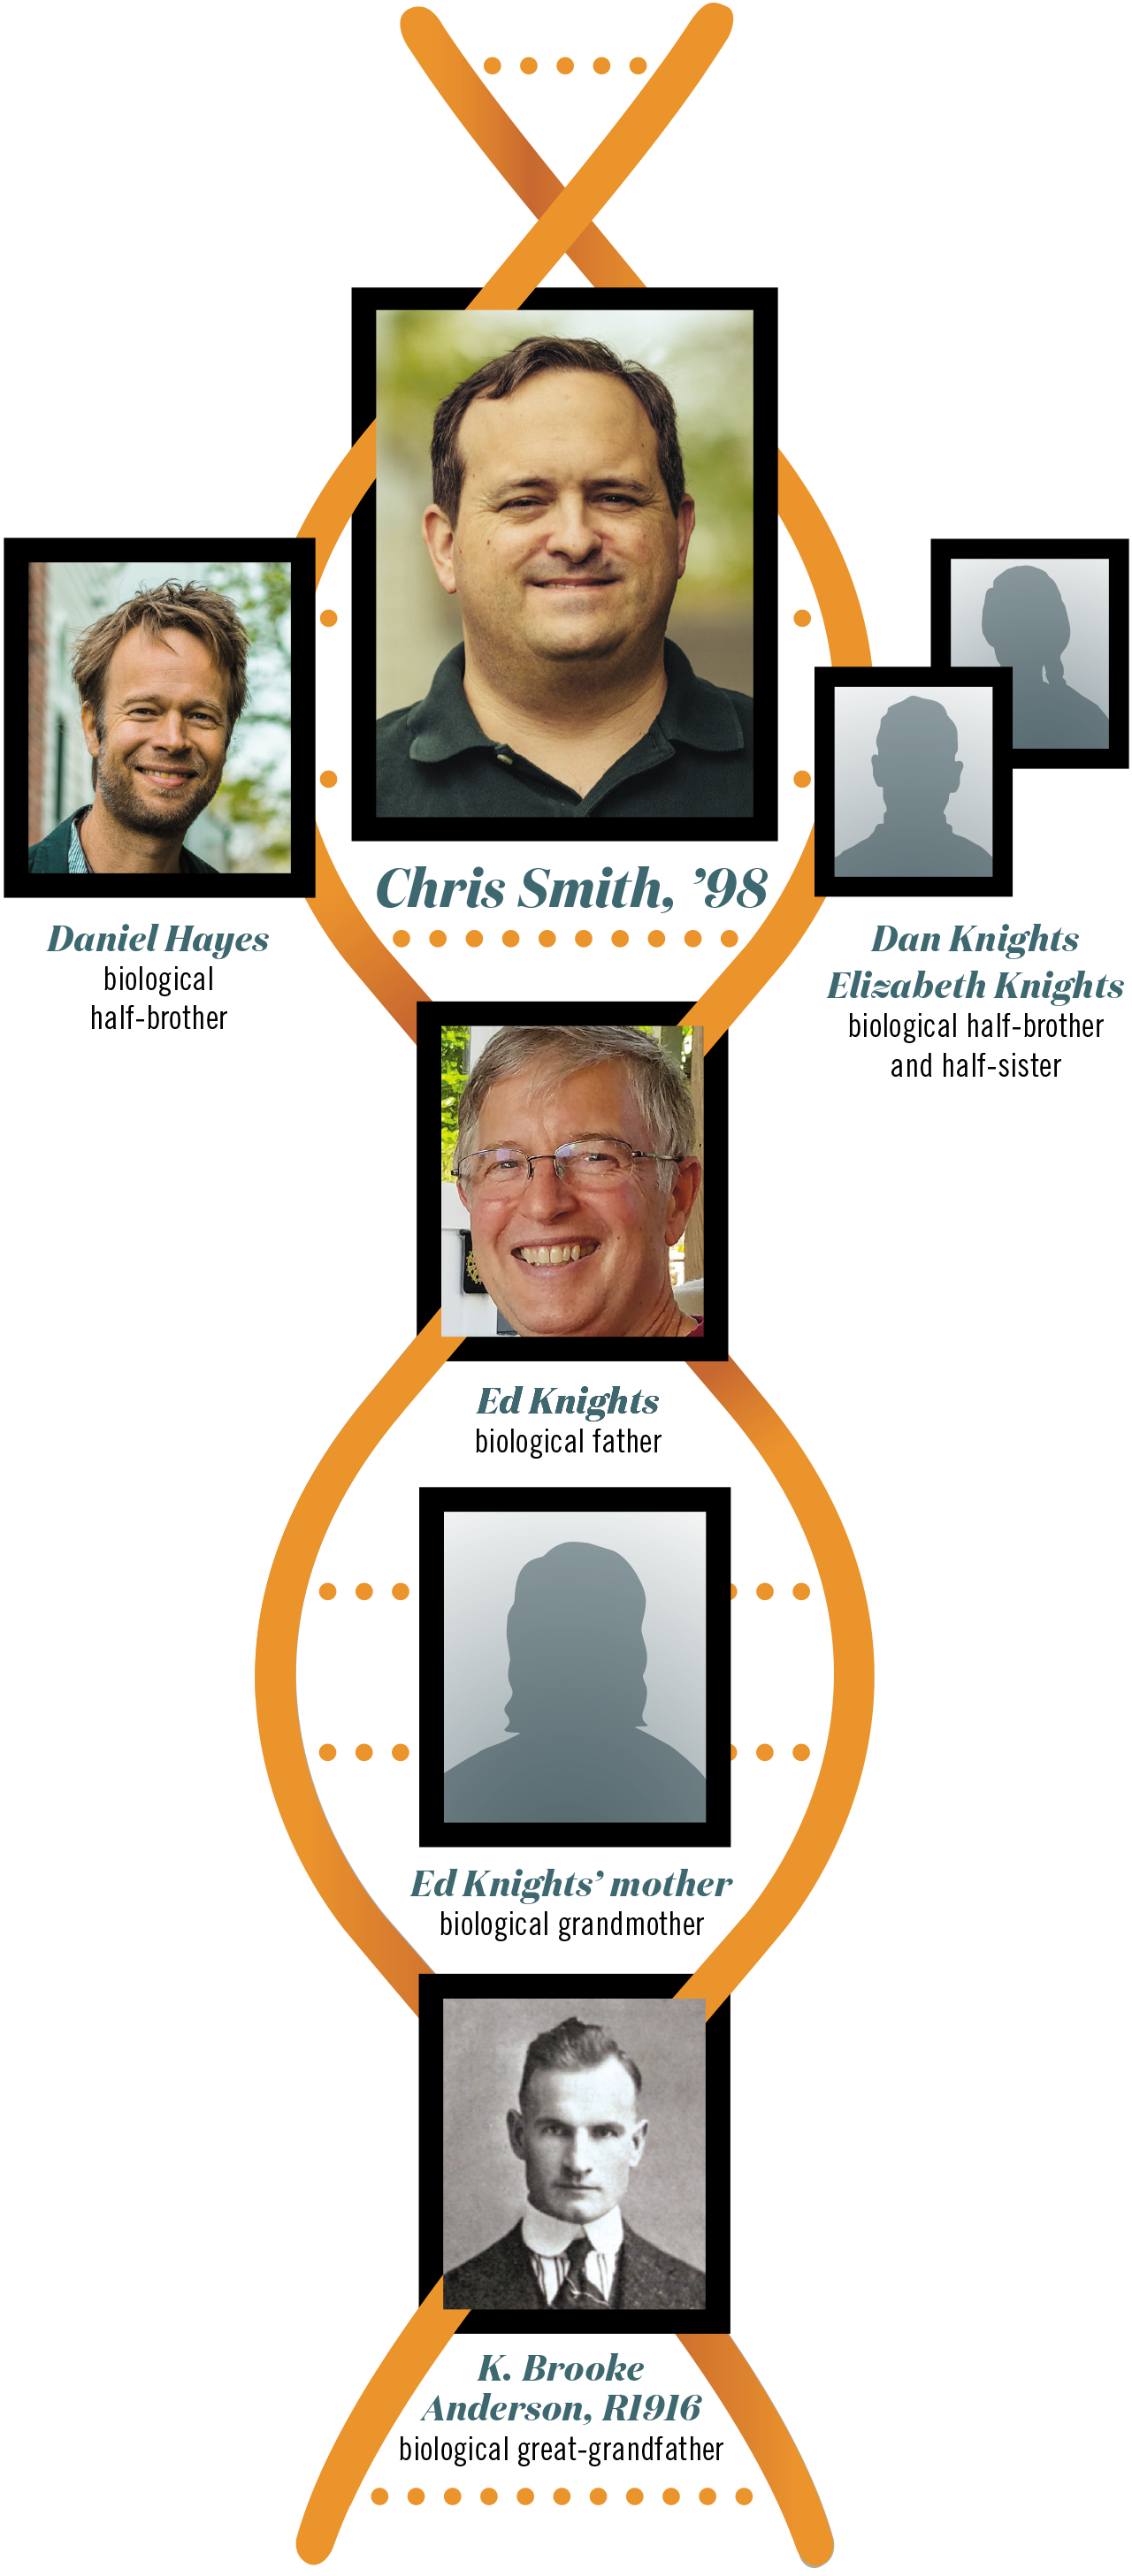 A graphic DNA helix showing Chris Smith, his biological half-brother Daniel Hayes, biological father Ed Knights, and biological great-grandfather K. Brooke Anderson (UR class of 1916)